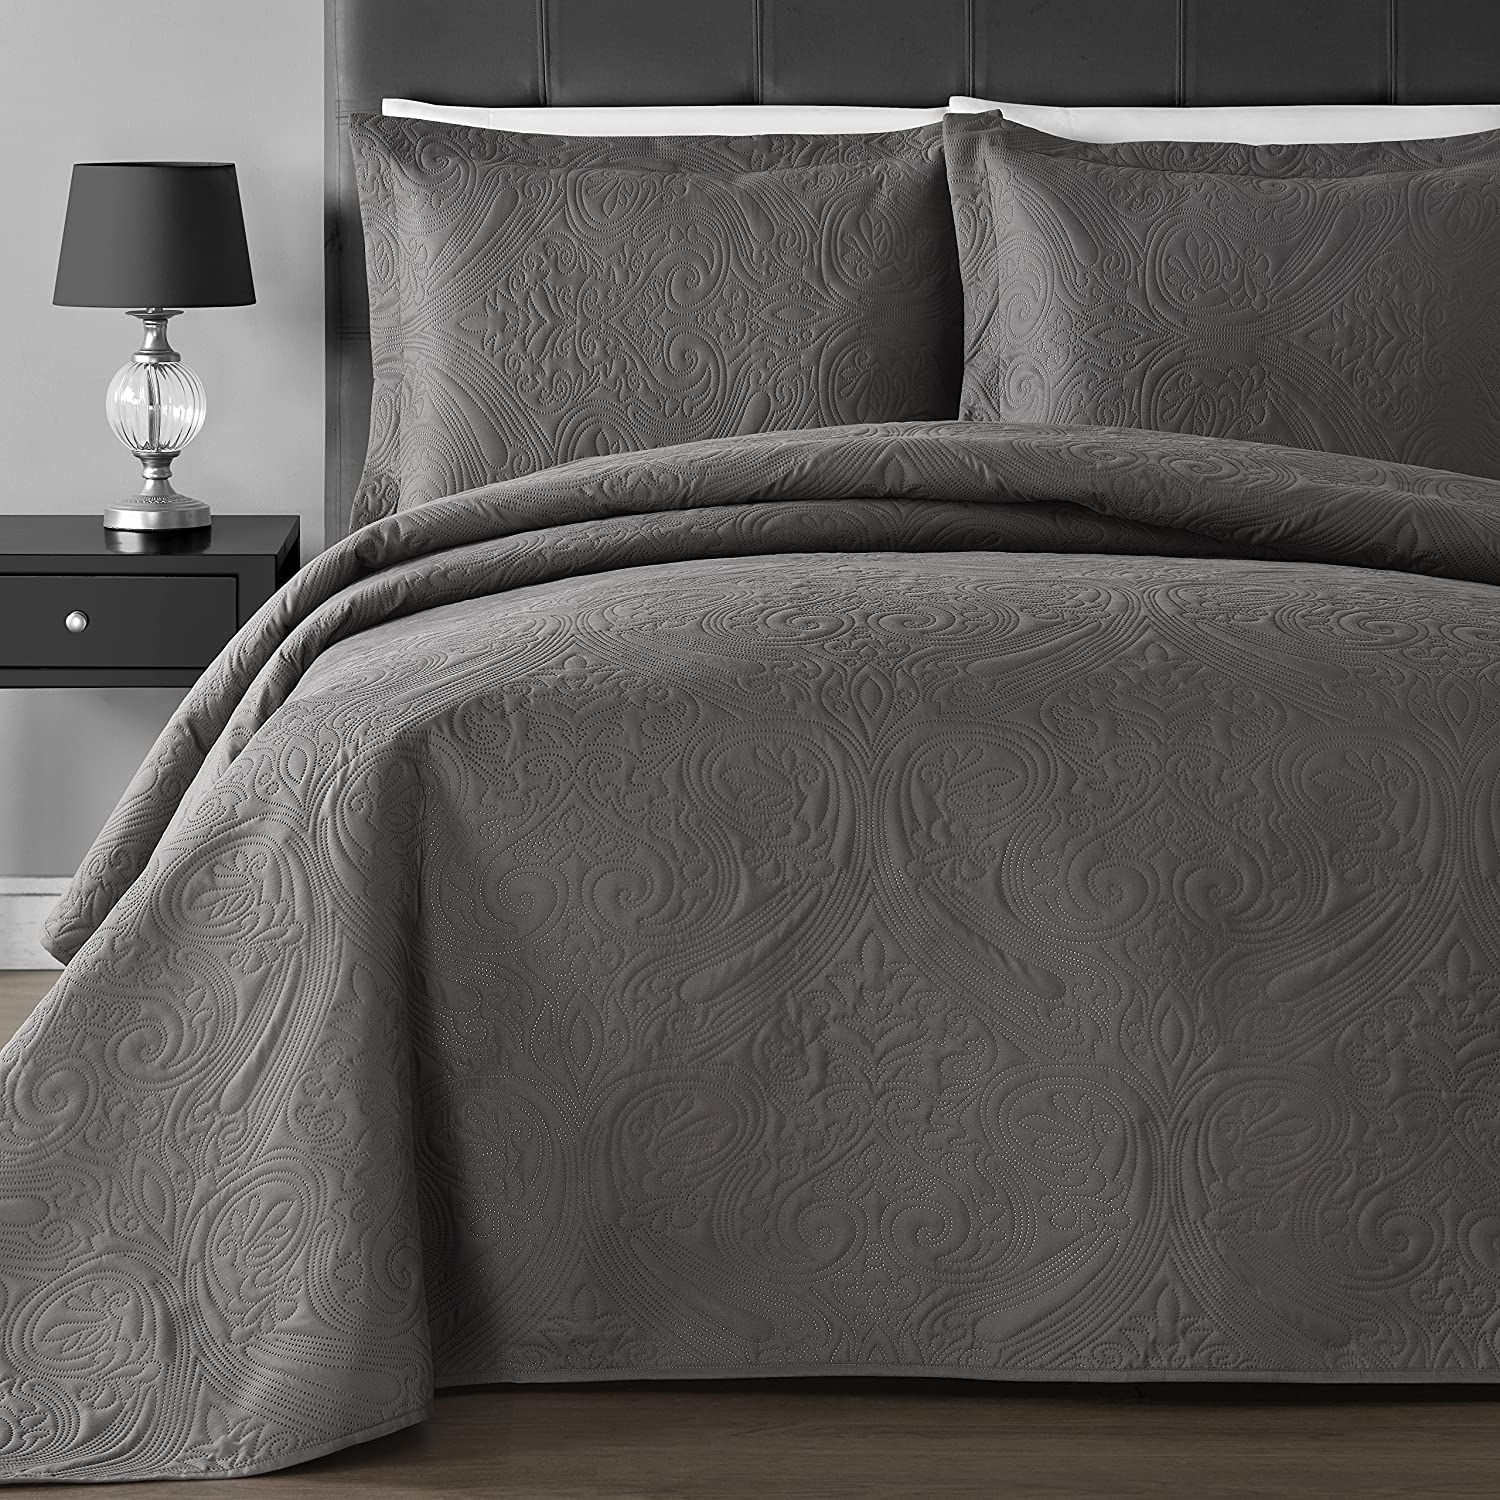 Comfy Bedding Extra Lightweight and Oversized Thermal Pressi